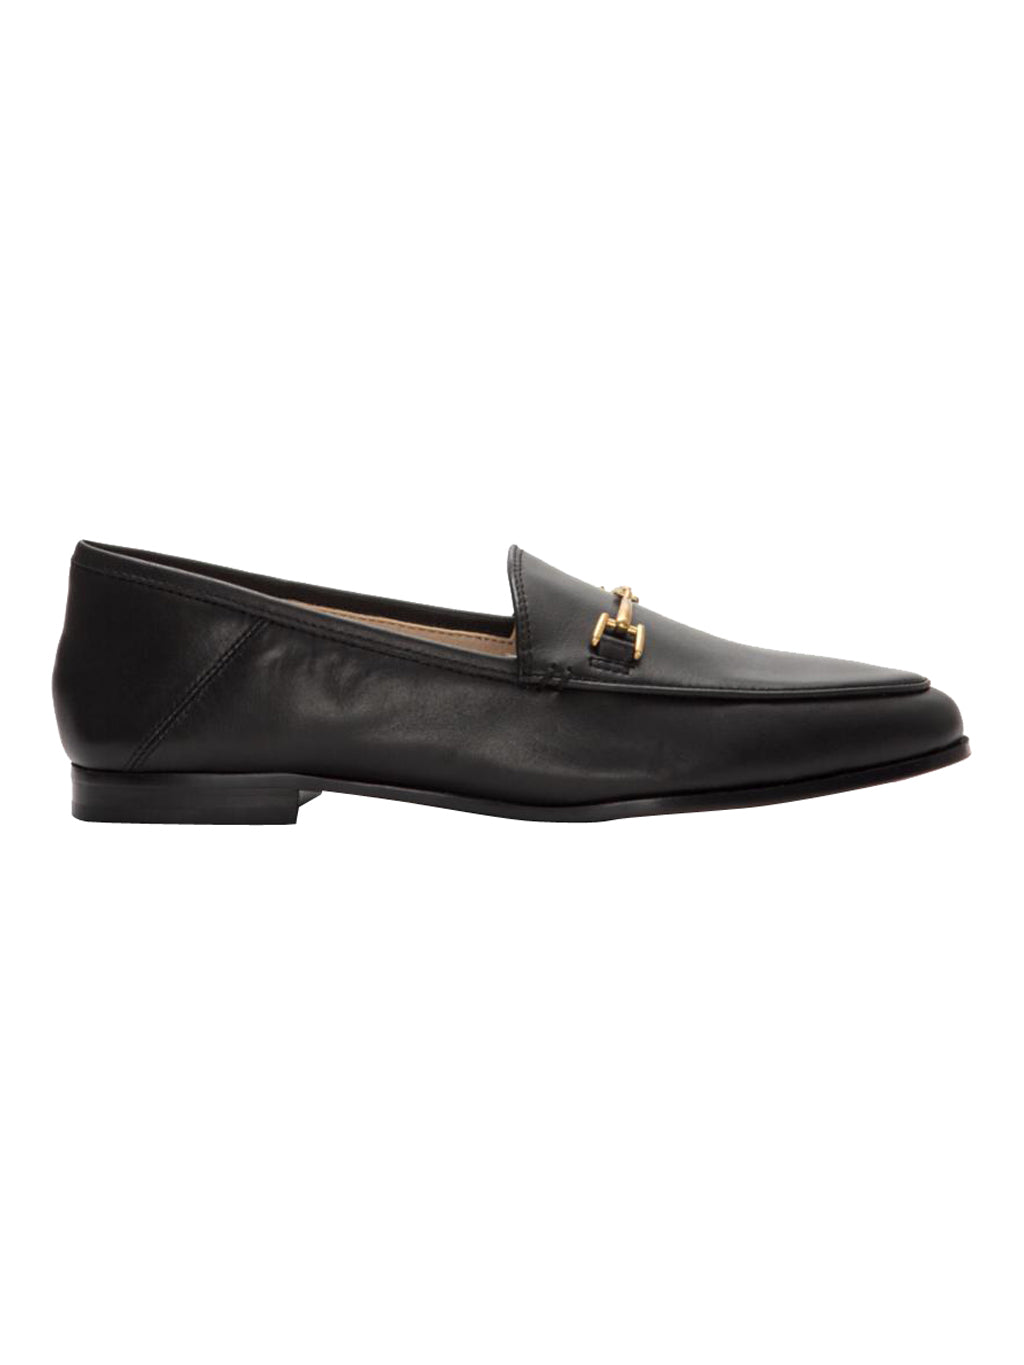 Black Loraine Loafers